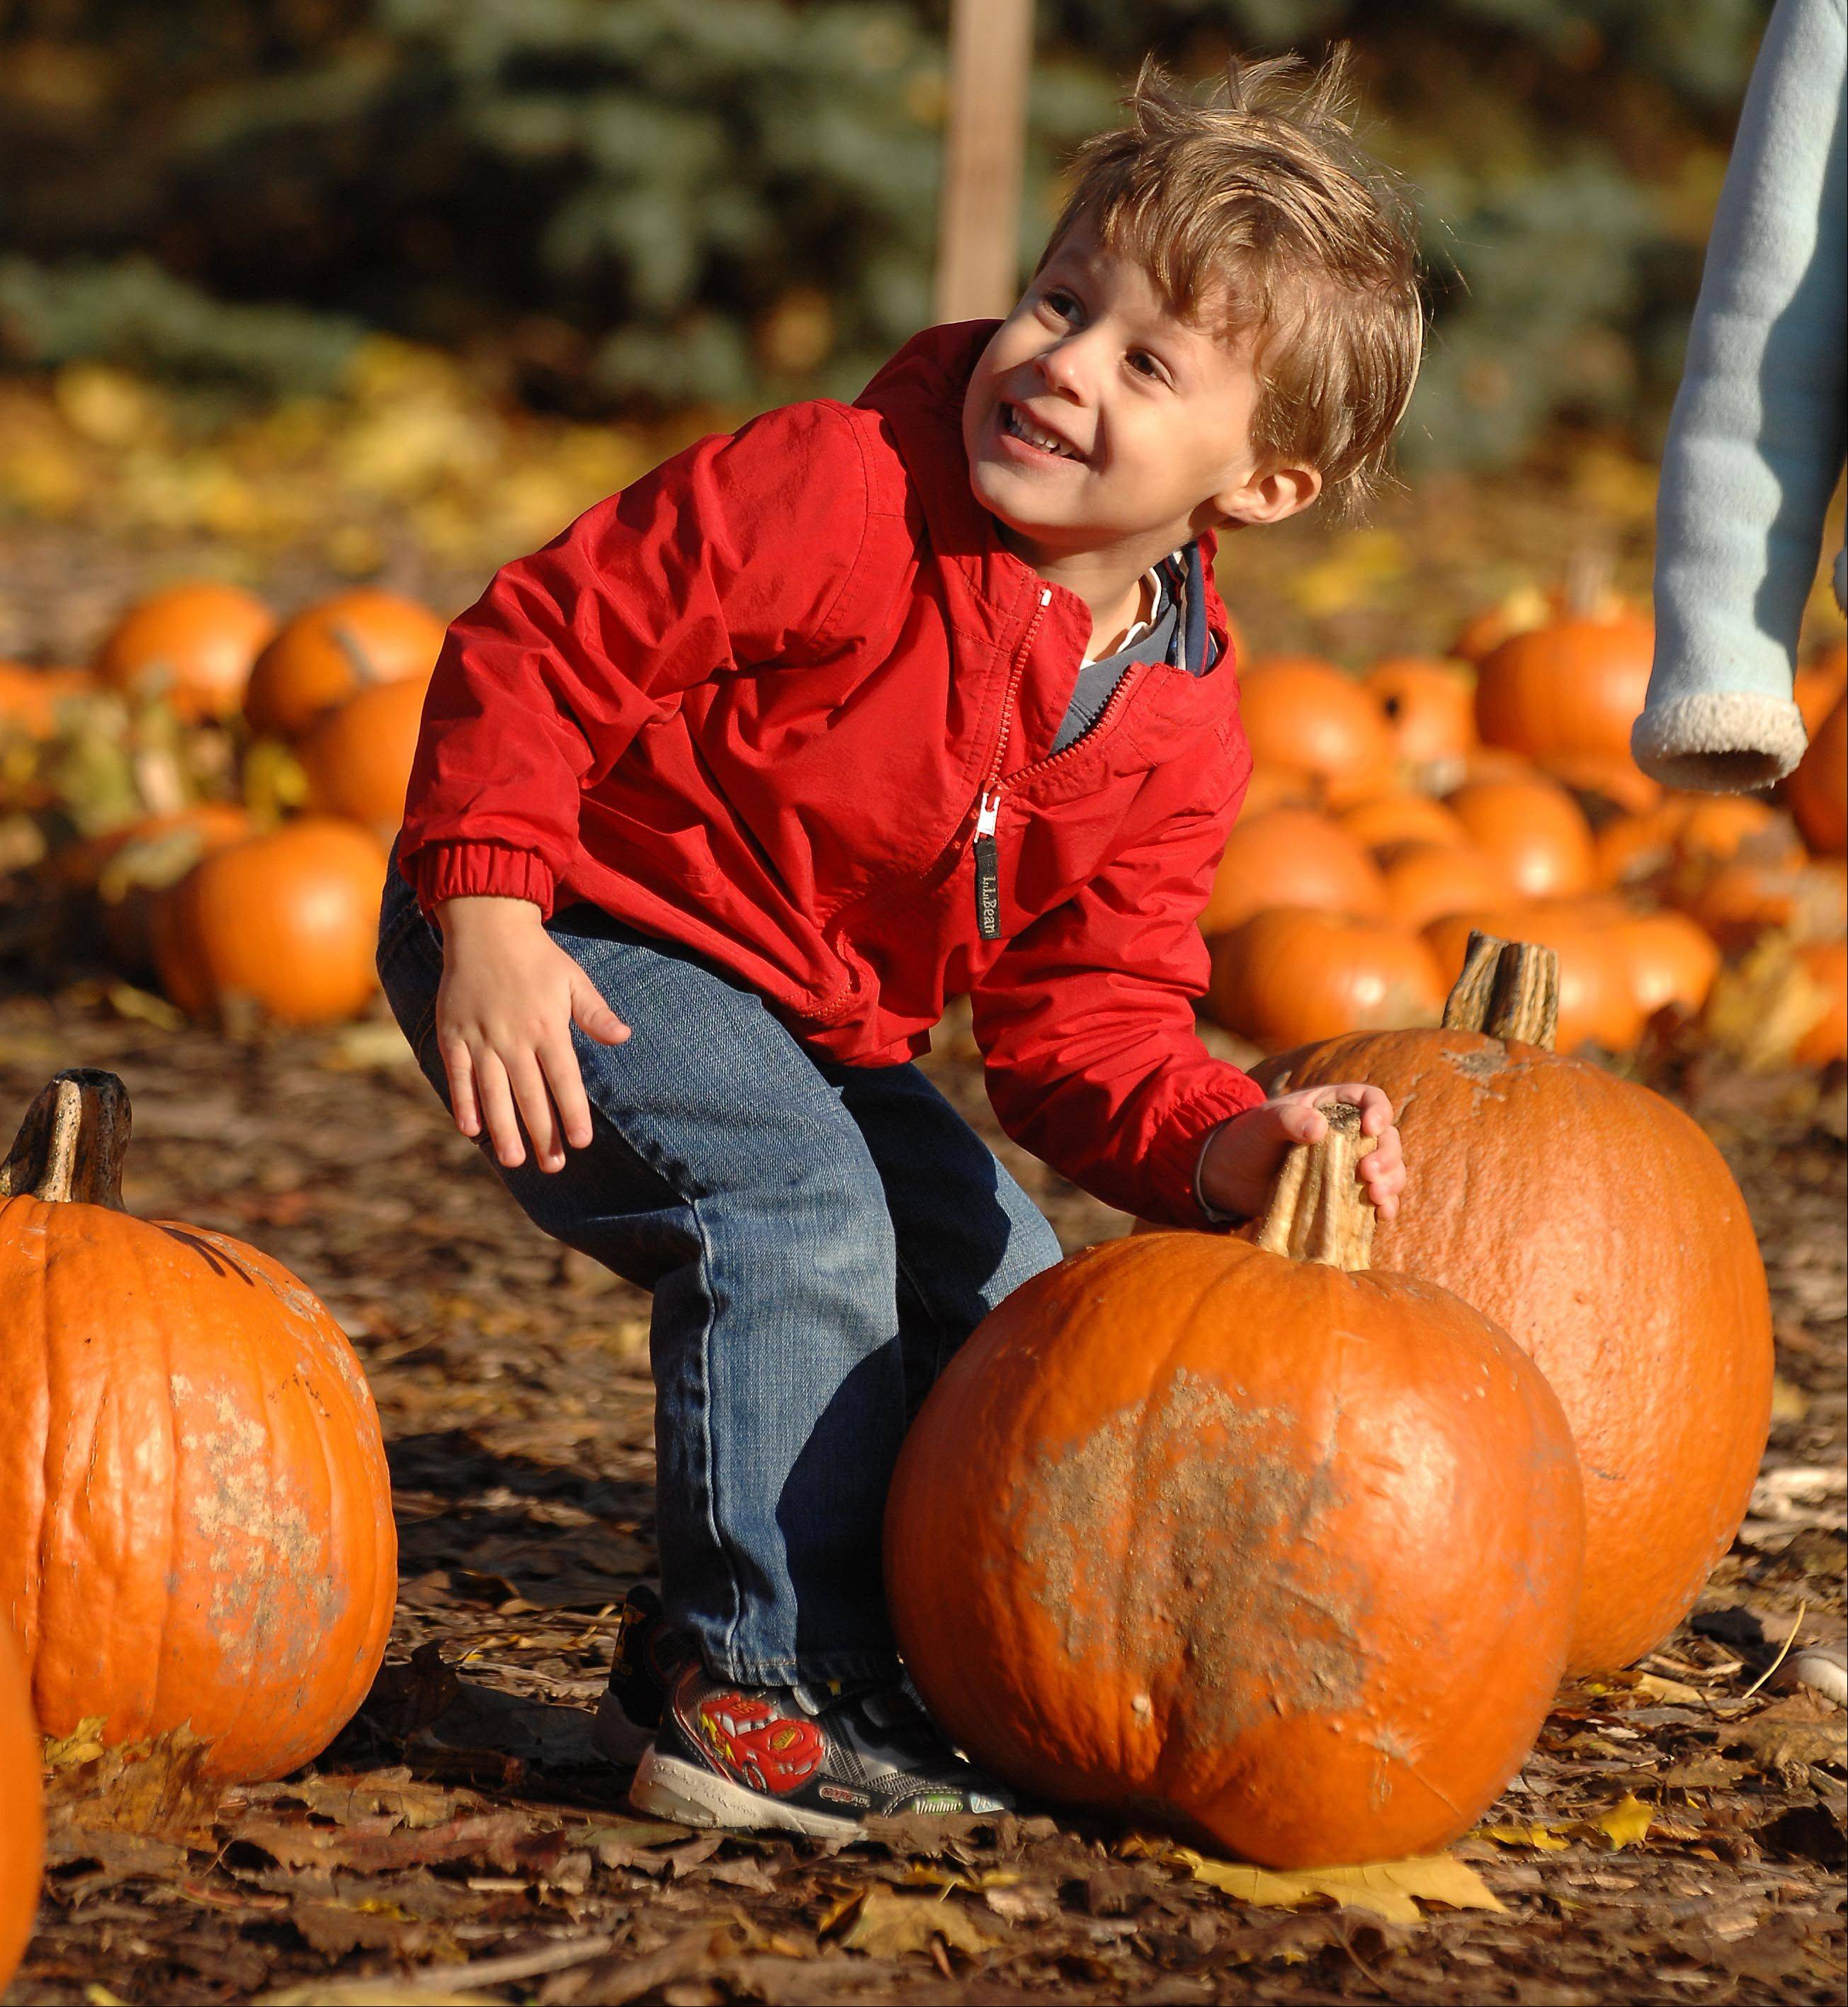 Kids have thousands of pumpkins to choose from at Cosley Zoo's Pumpkin Fest.